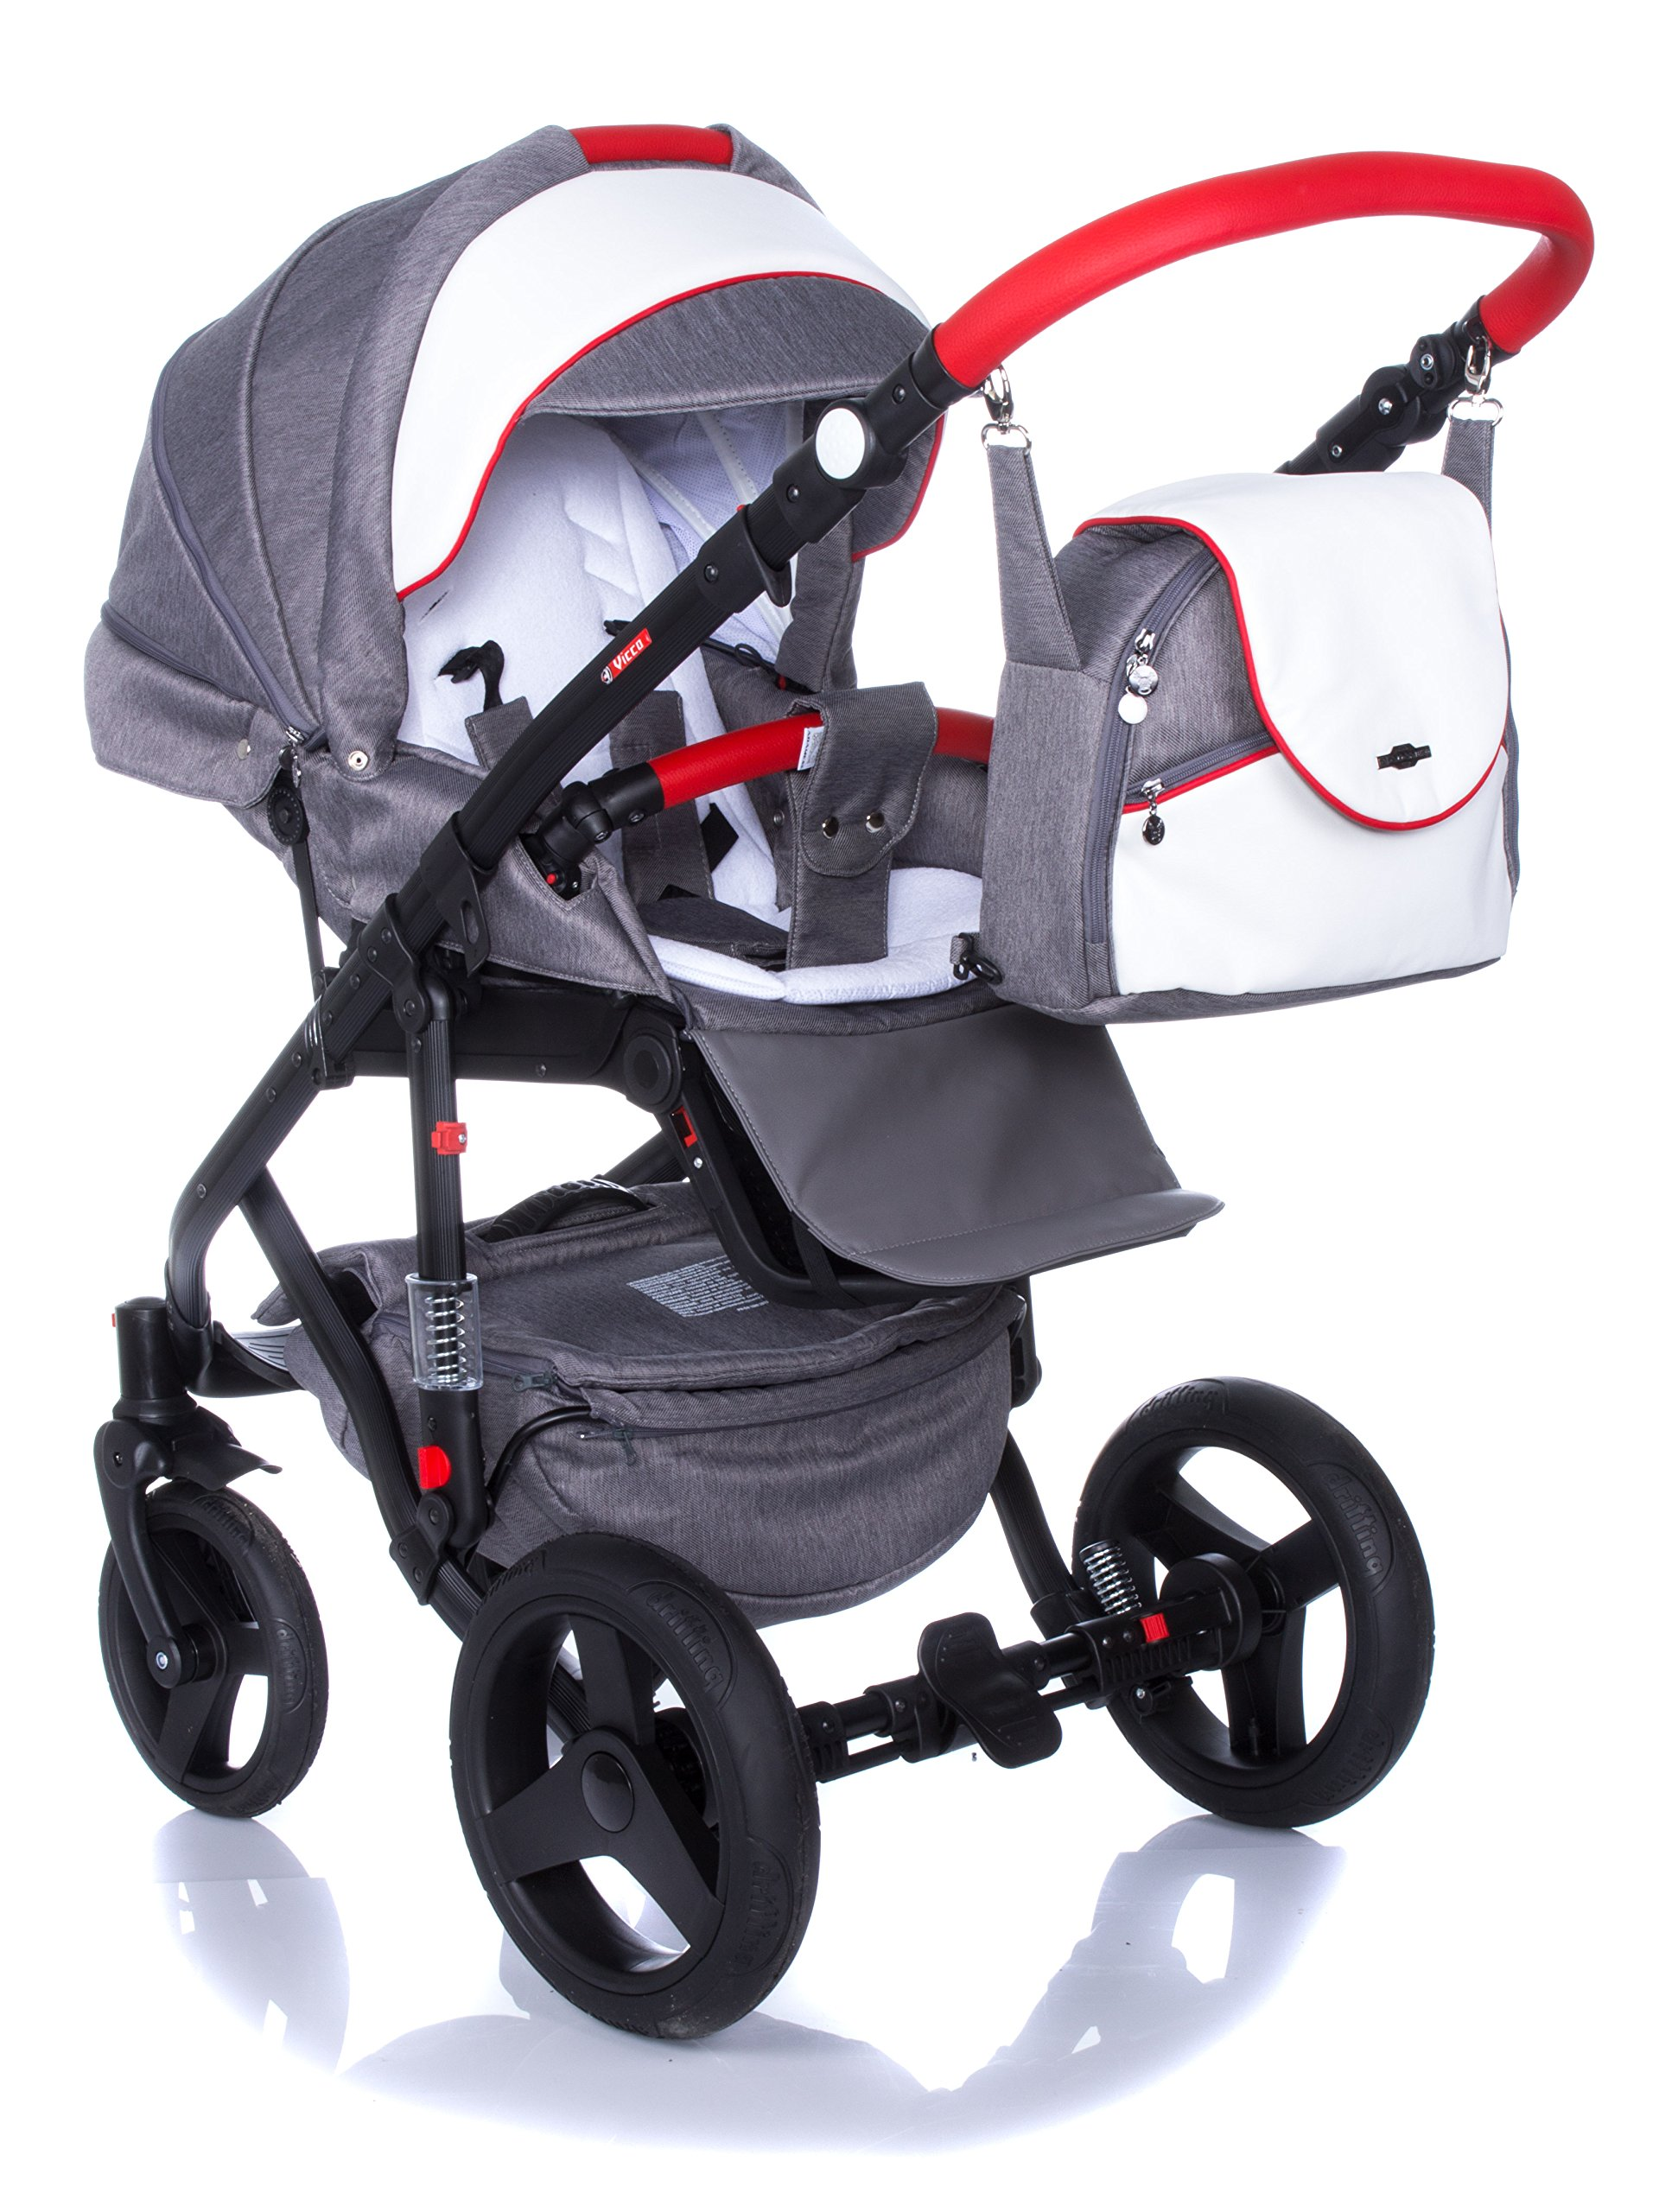 Baby Pram Pushchair Stroller Buggy Travel System Set Adamex Vicco + Baby Bag + Rain Cover + Mosquito Net + (2in1, R2 Red Graphite) Adamex Lockable swivel wheels and lockable side suspension system Light alluminium chassis with gel wheels 50% Ecco Leather and 50% Polyester shell 9